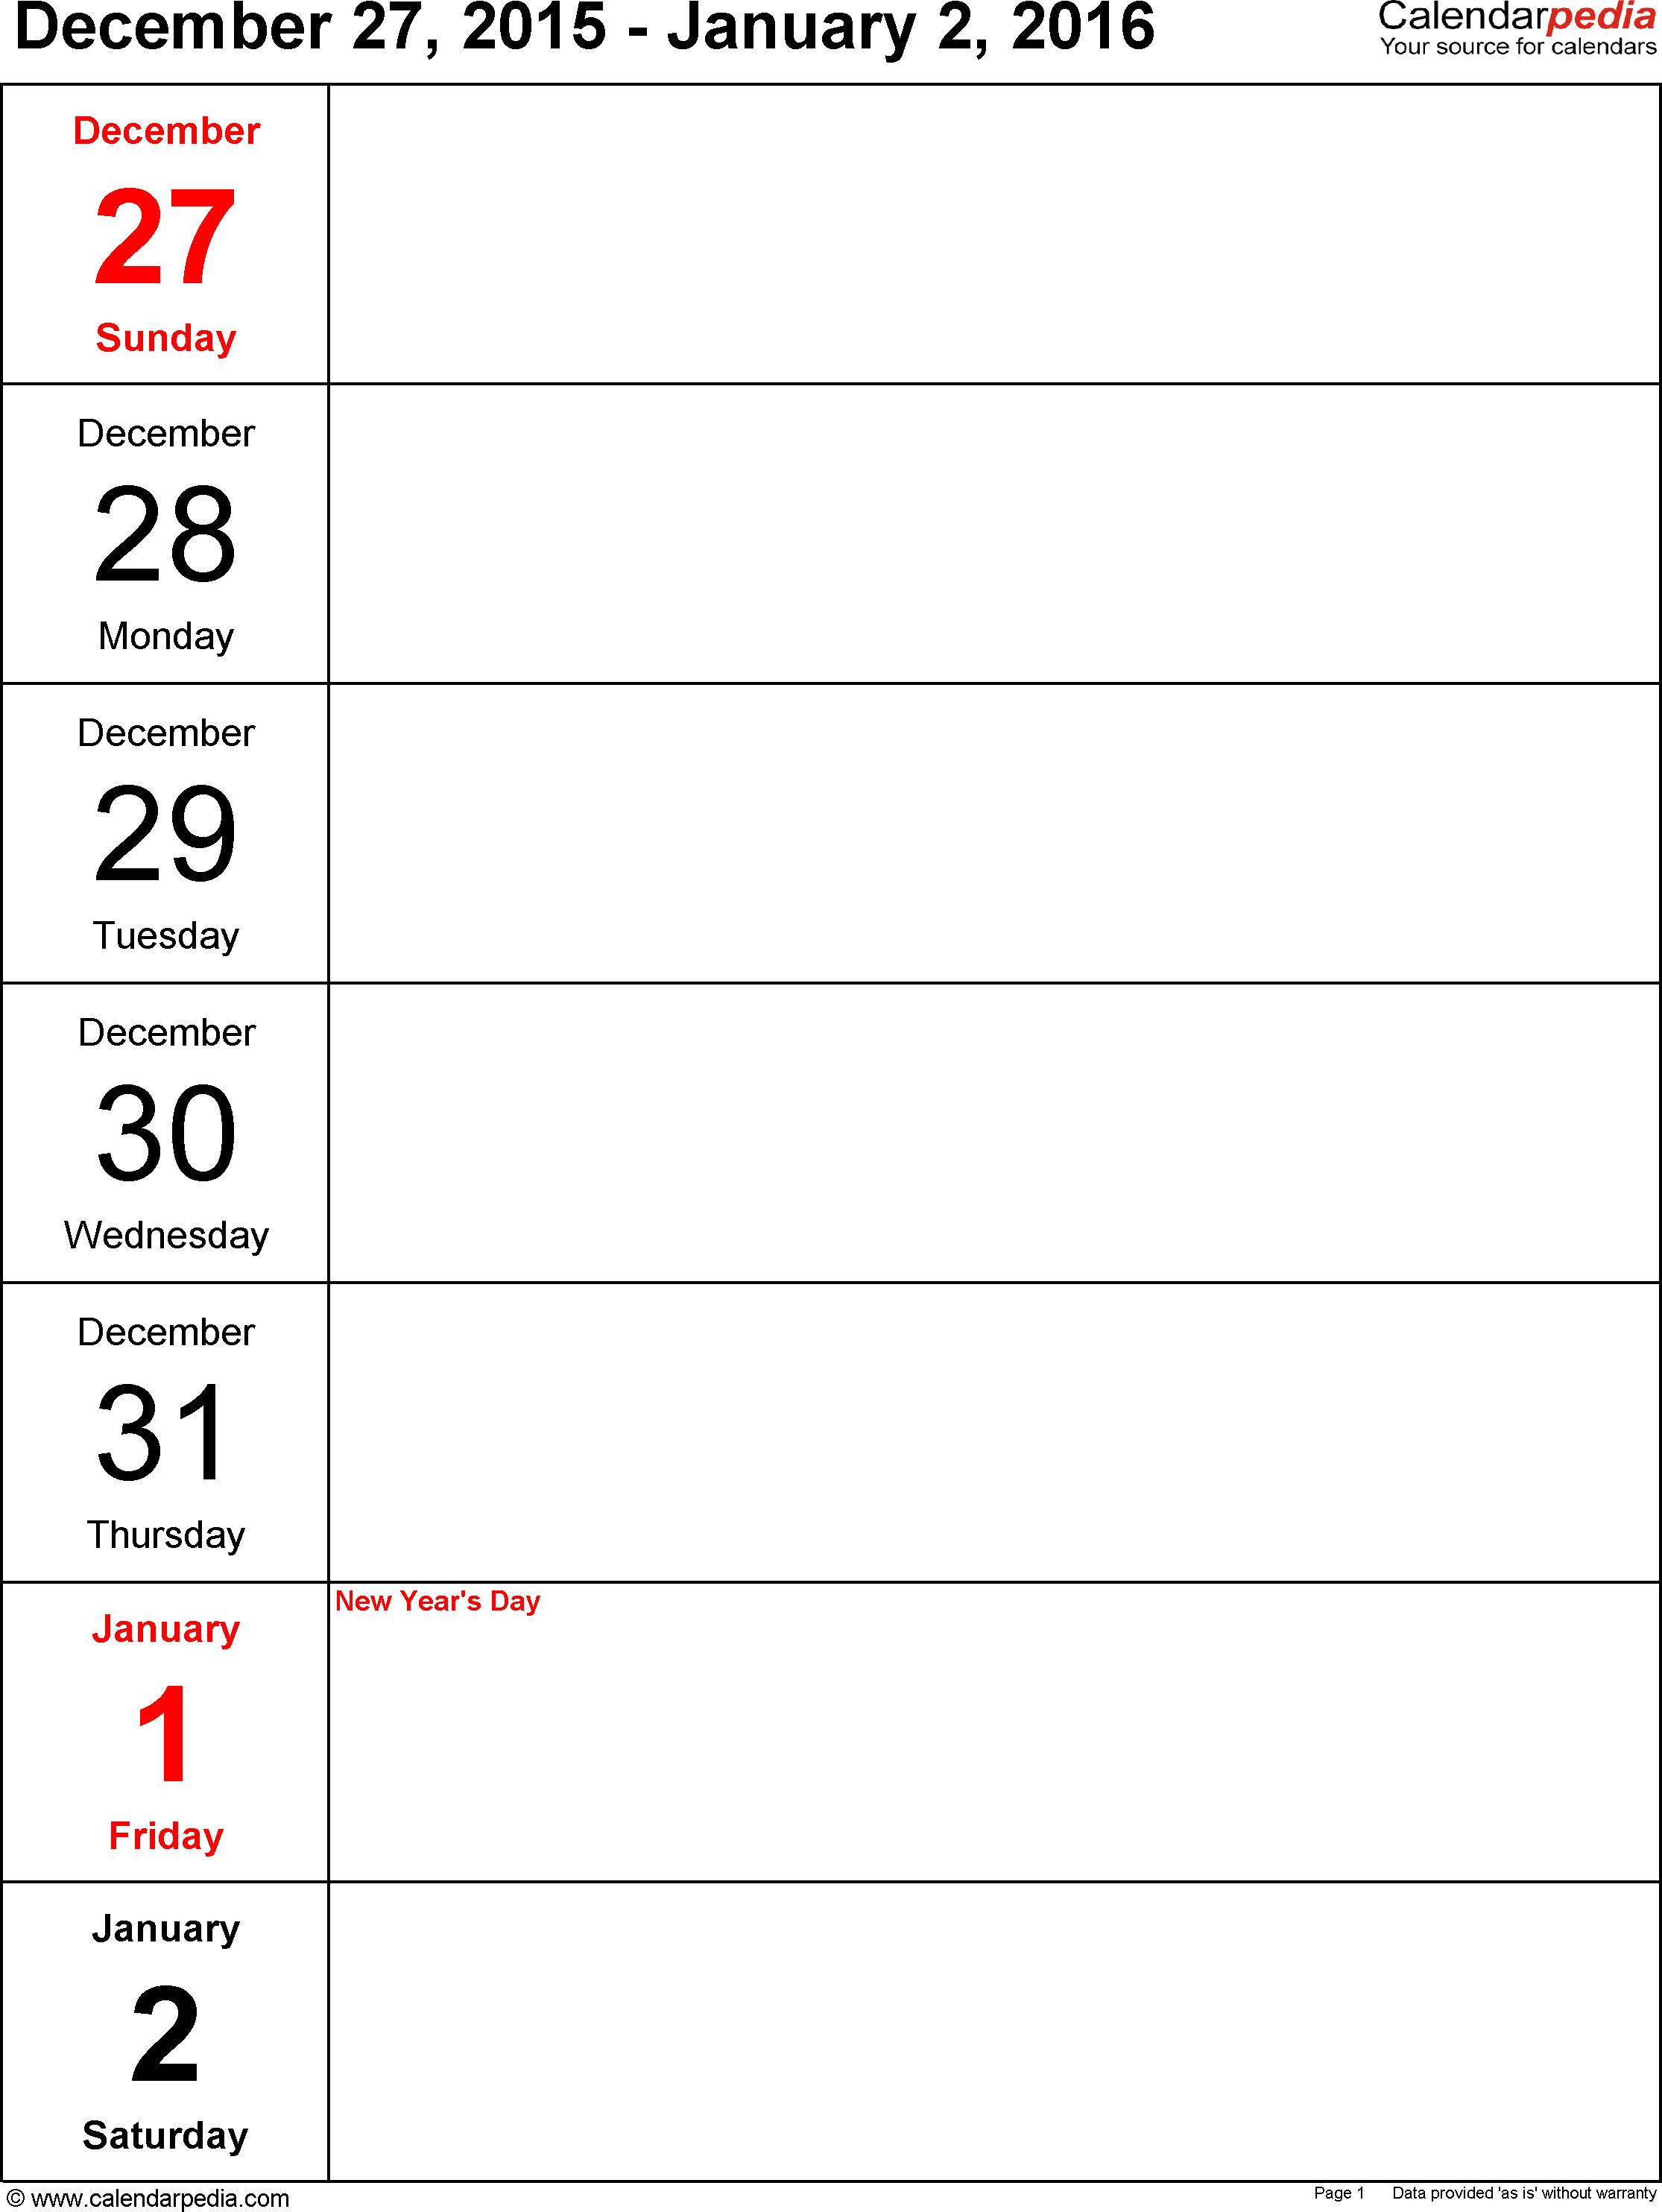 Weekly Calendar 2016 For Word - 12 Free Printable Templates regarding Blank December Weekly Calander